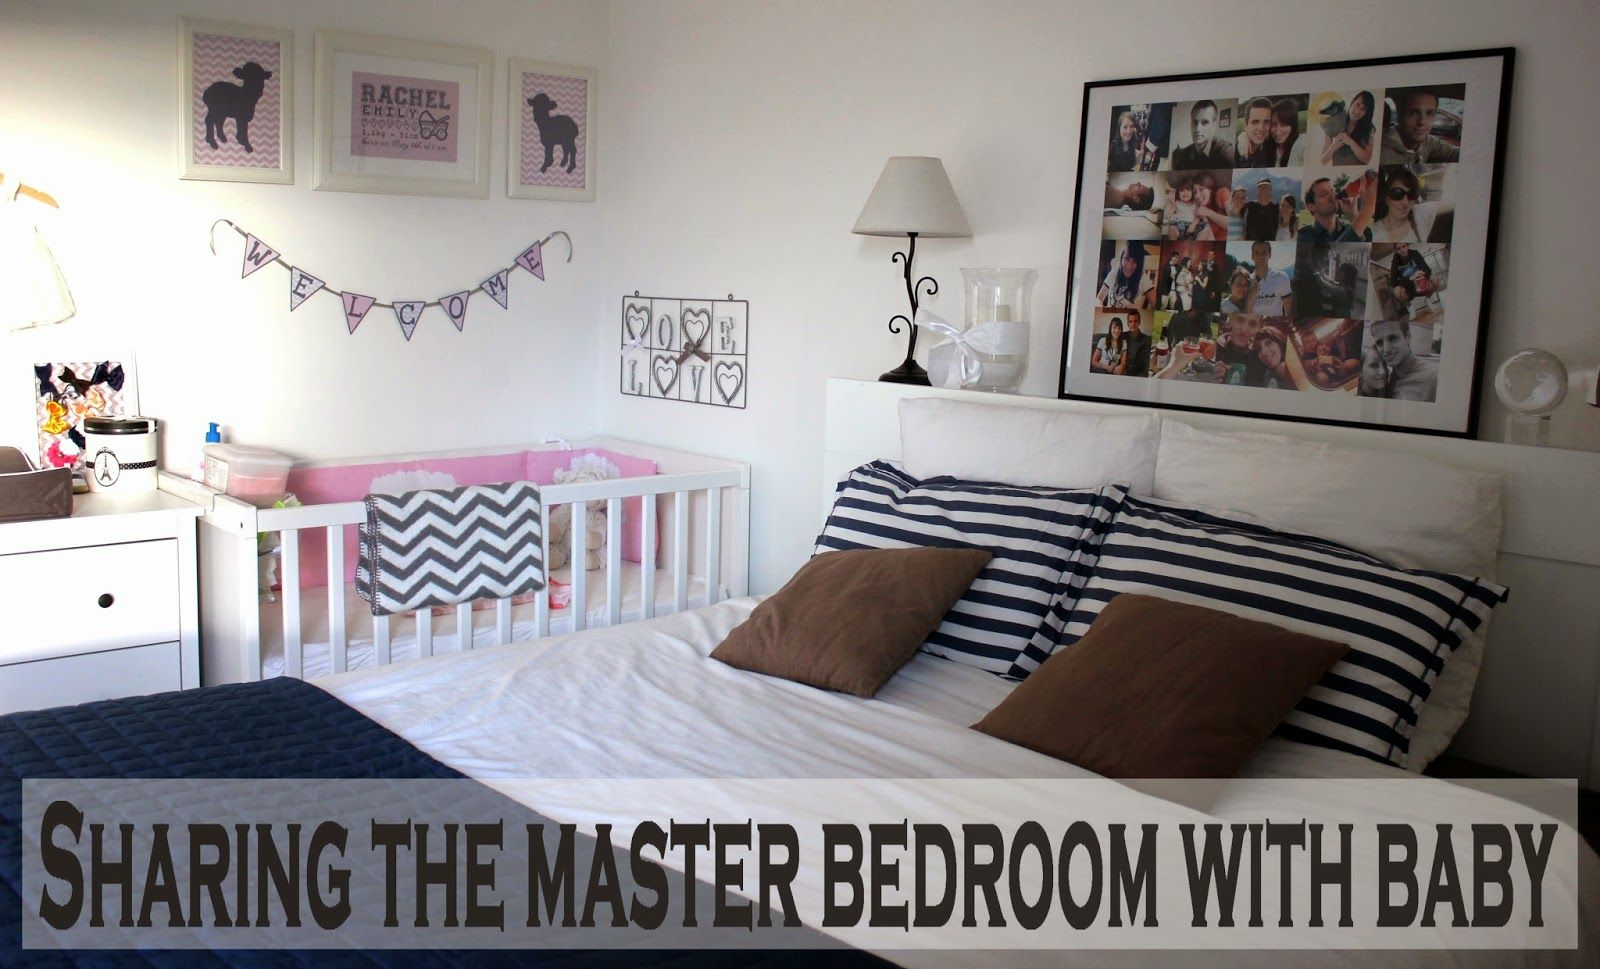 Sharing the master bedroom with baby parenting baby pinterest master bedroom bedrooms Master bedroom plus nursery